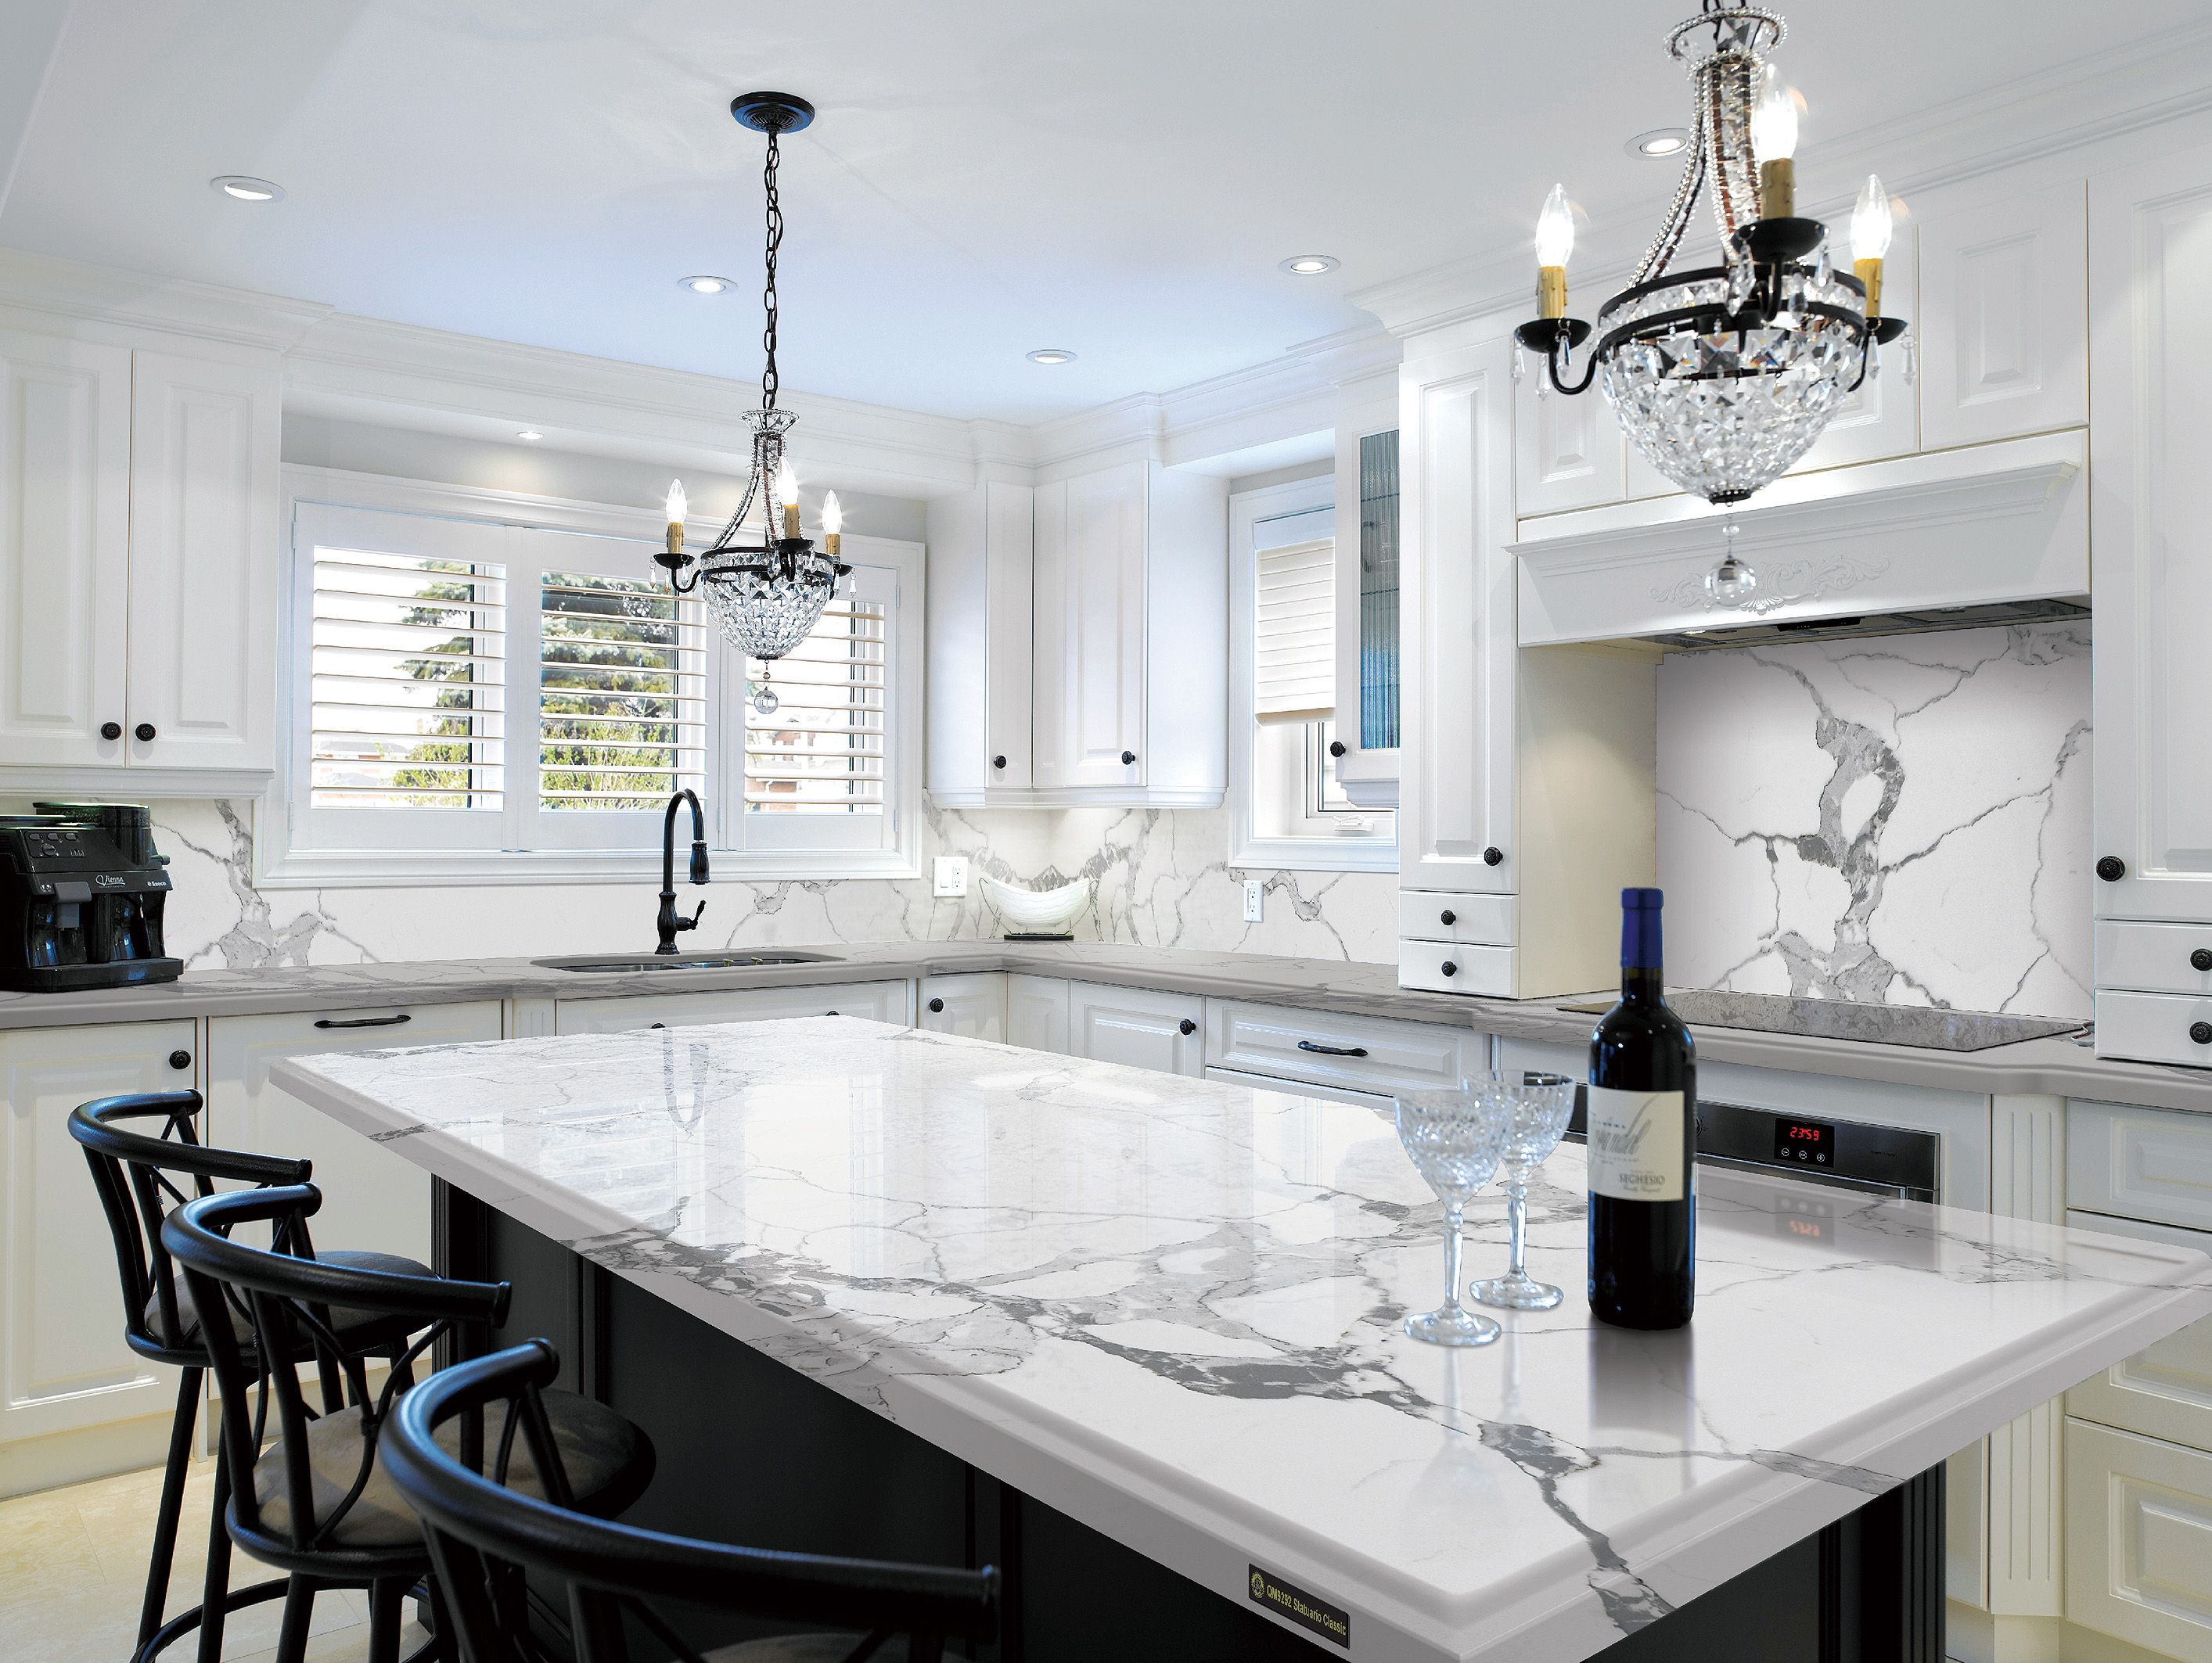 Engineered Quartz Countertops, Silestone Kitchen Countertops, Quartz Slabs  For Countertops